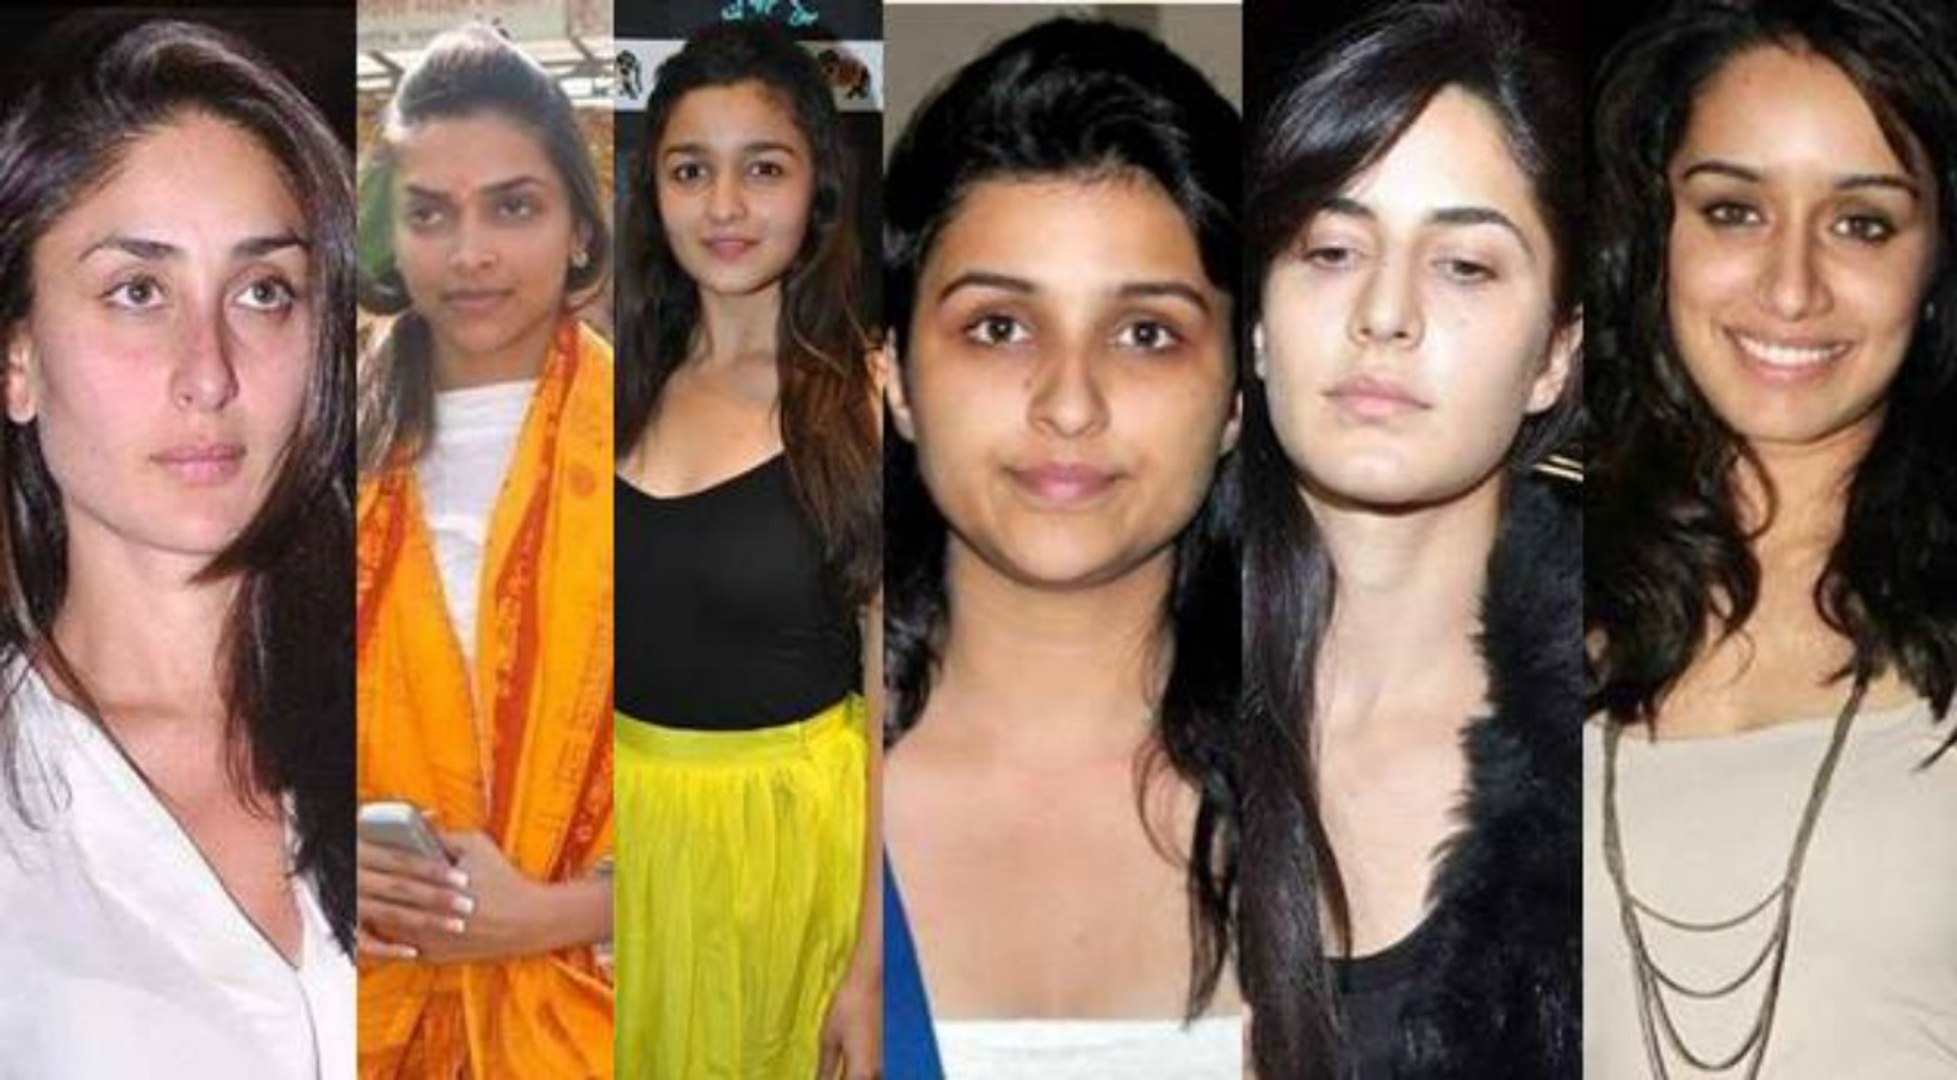 7 selfie pics of bollywood beauties without makeup